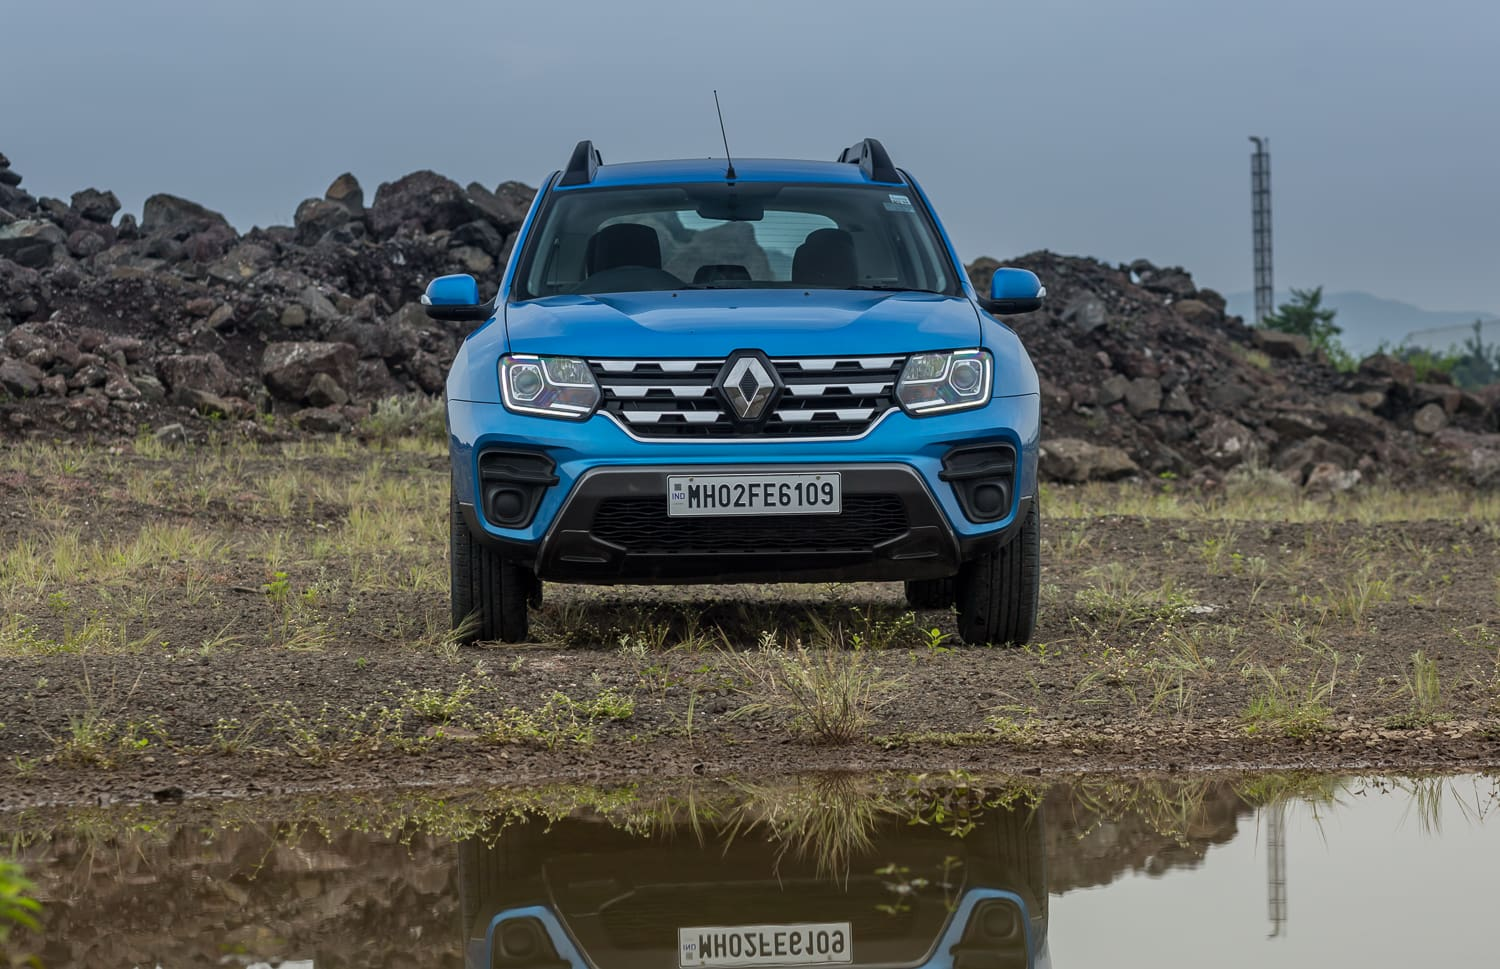 Renault Duster Production Likely To Be Halted In Final Quarter Of 2021